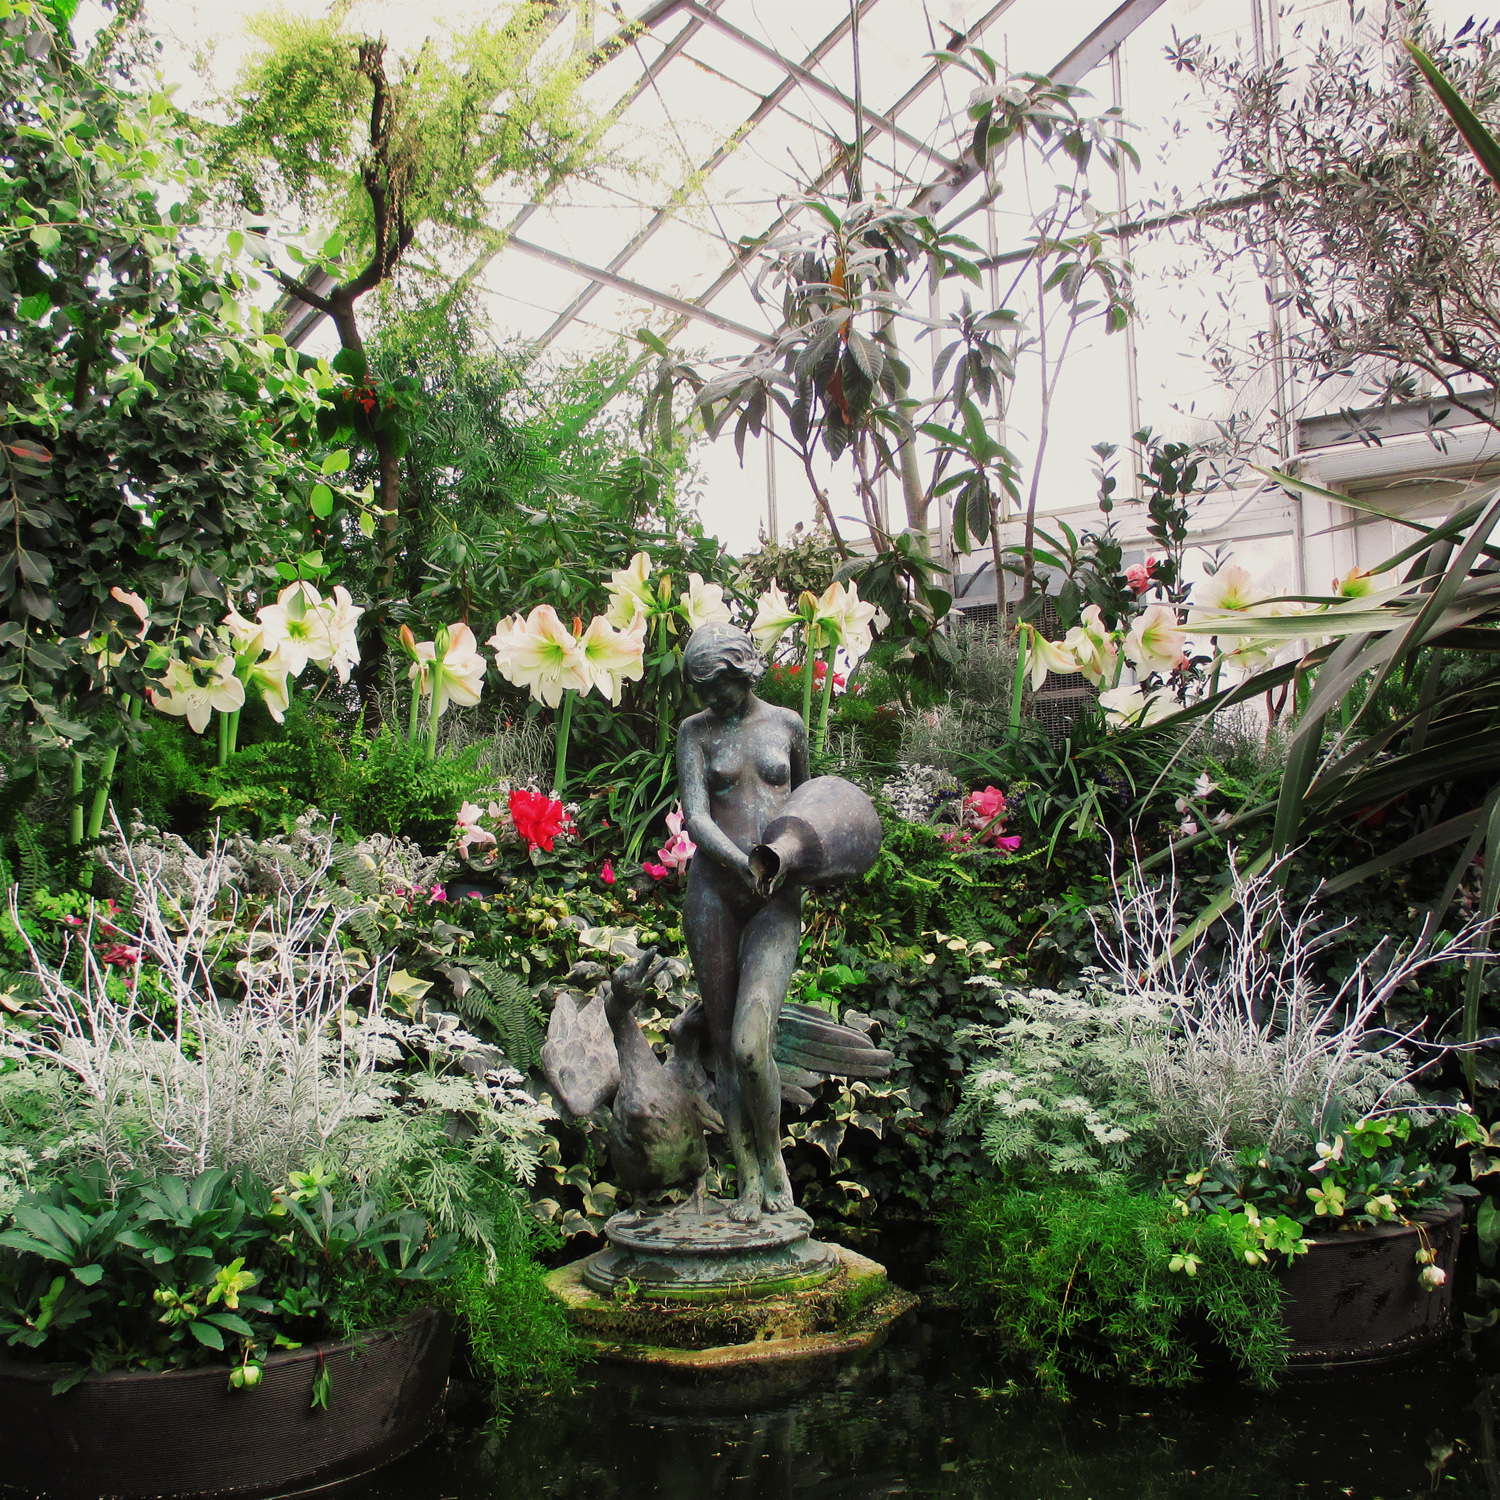 pond in the greenhouse, with a statue of a woman holding an urn in middle.  Surrounded with tropical and sub tropcal plants including a row of tall white Amaryllis